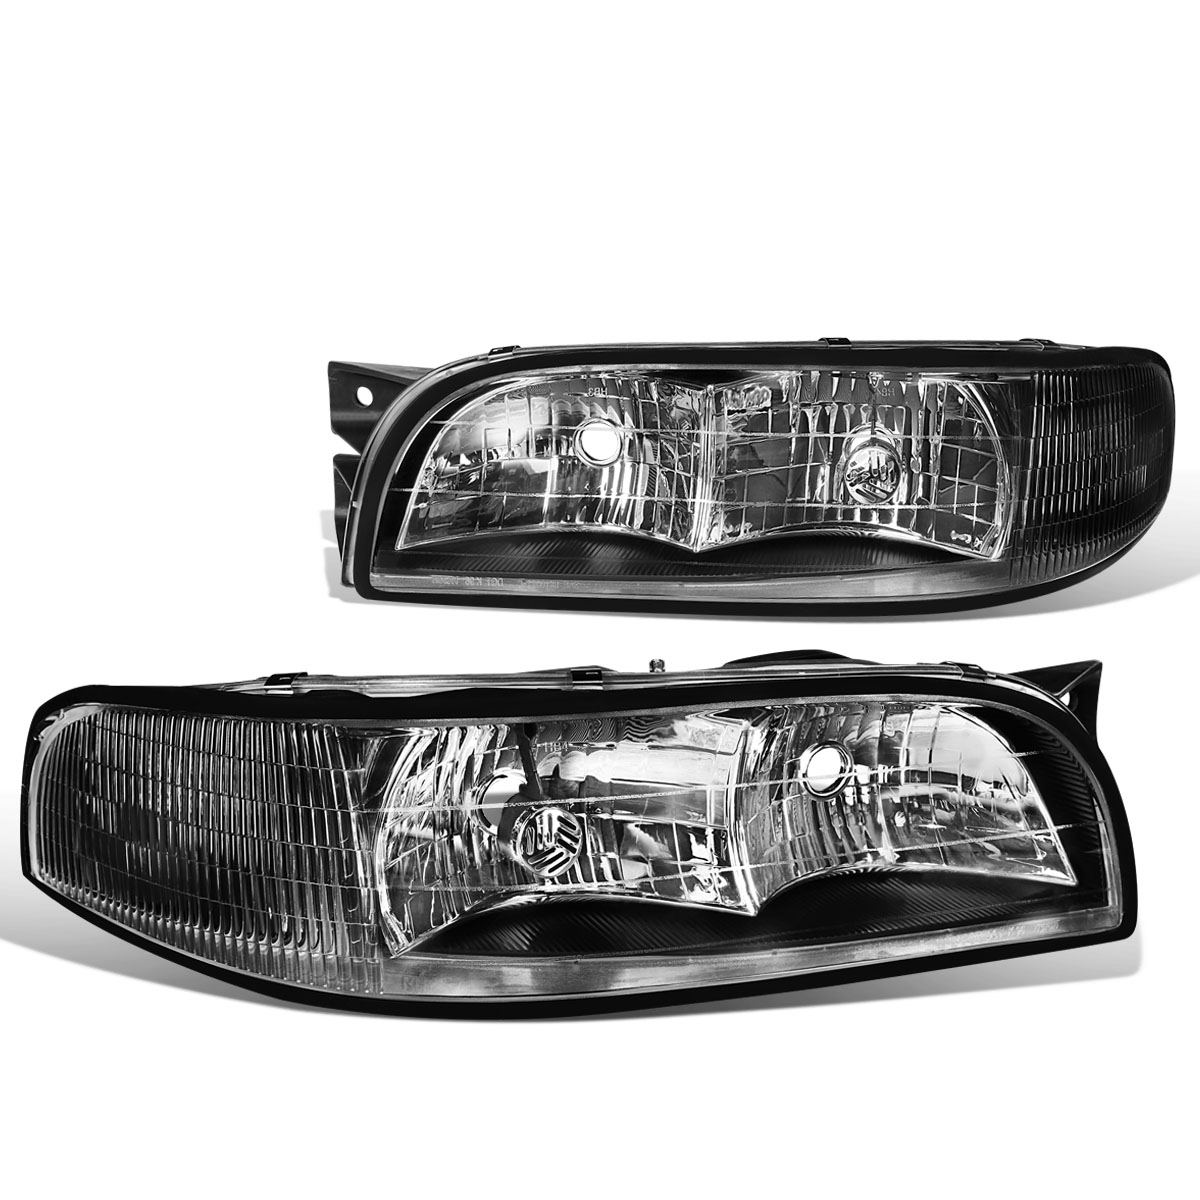 Headlights Headlamps Assembly Pair Set NEW for 97 98 99 Buick LeSabre New